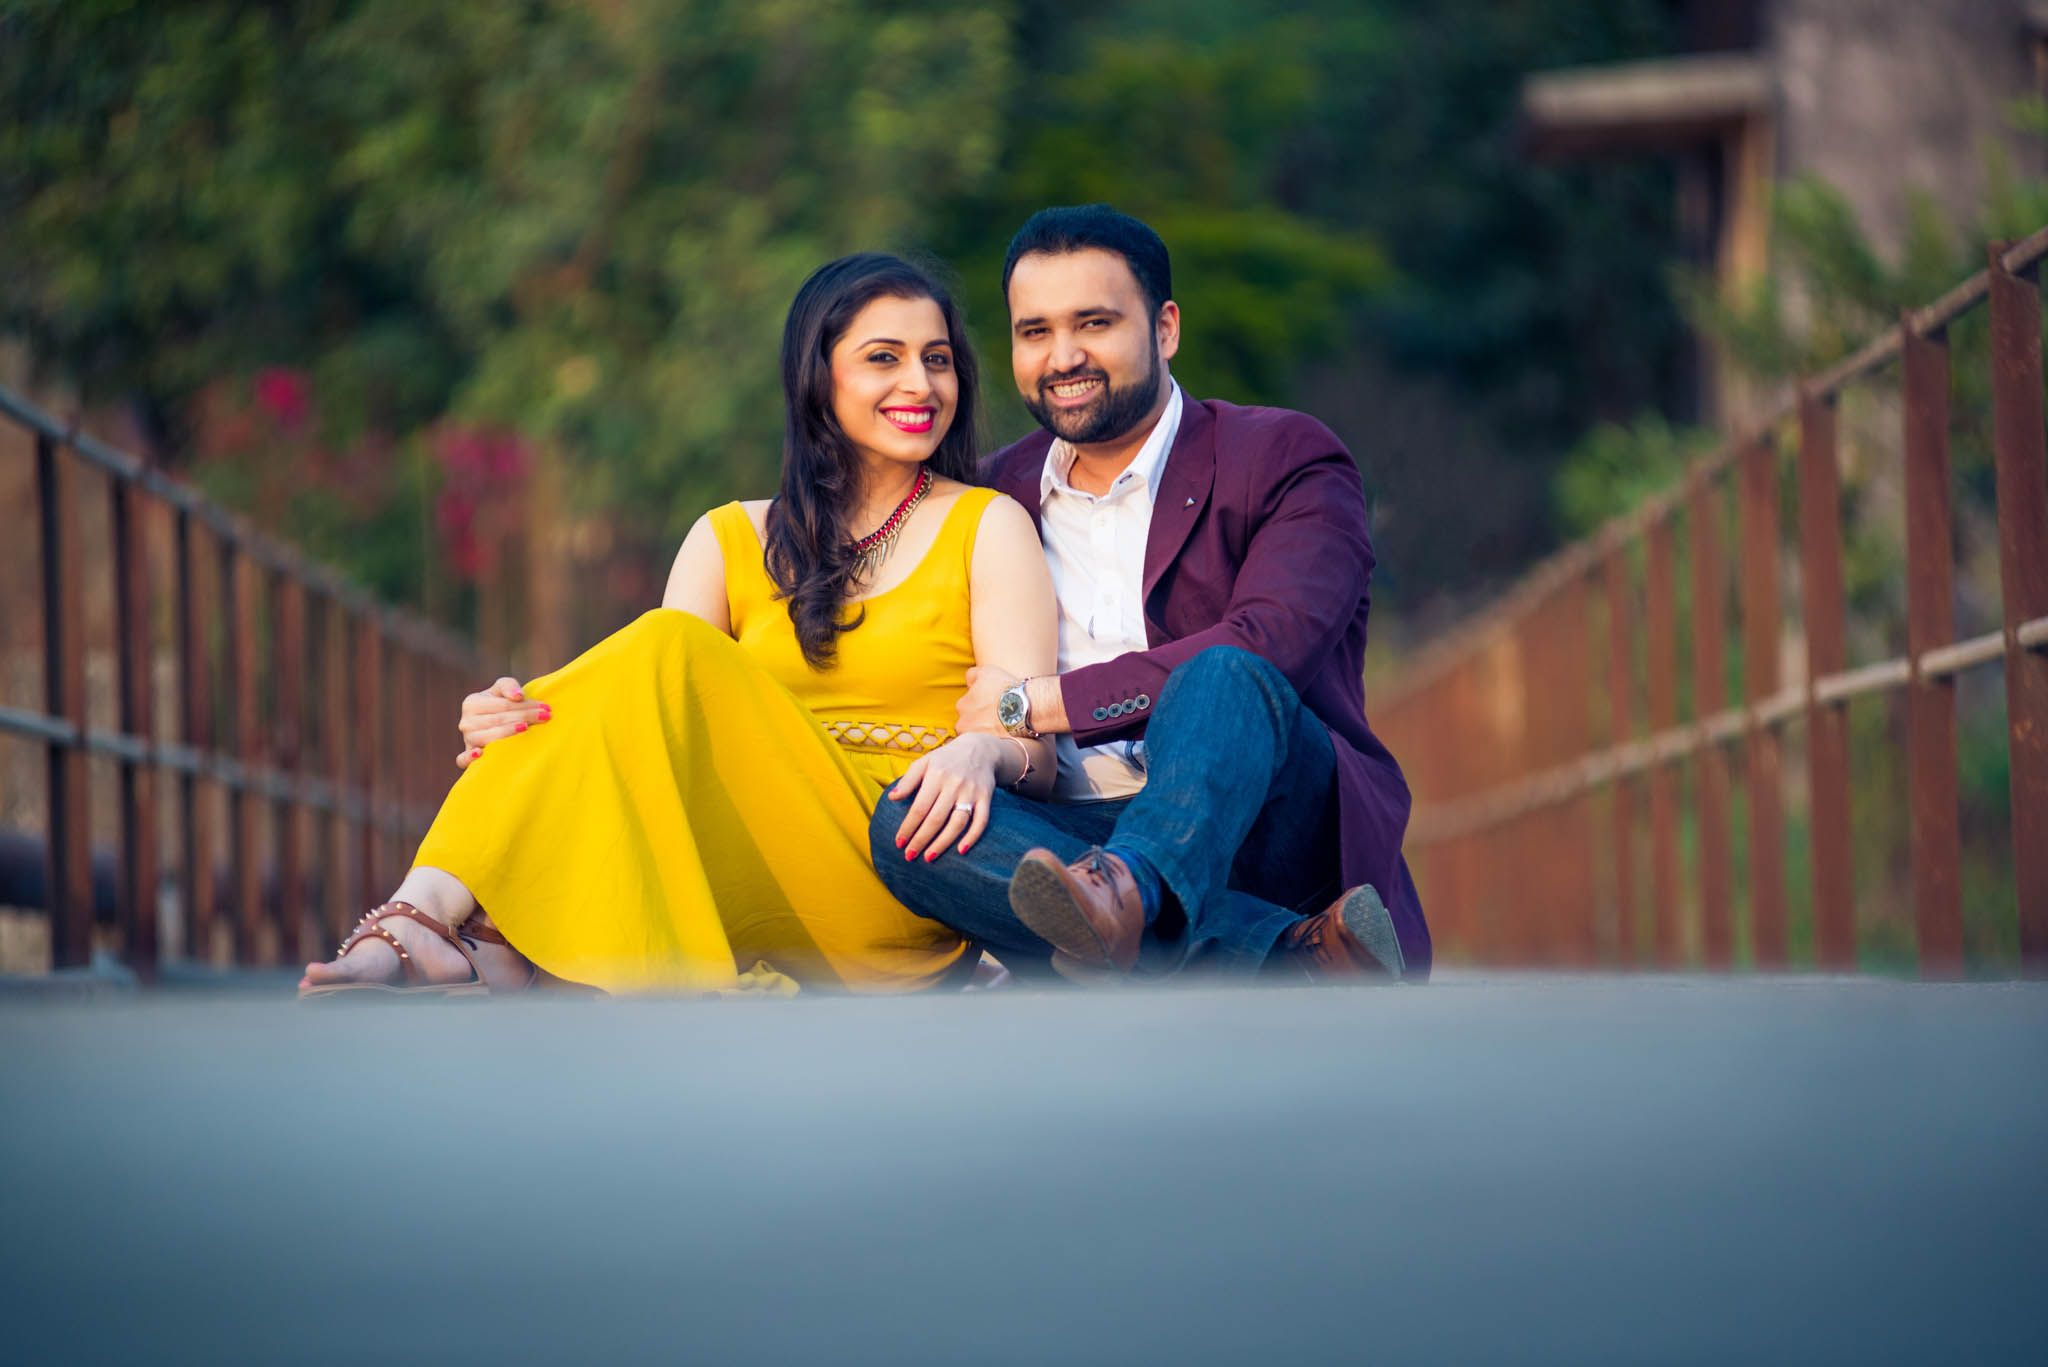 Whatknot Offer Pre Wedding Photographers And Photo Shoot In India We Have Professional Team For The